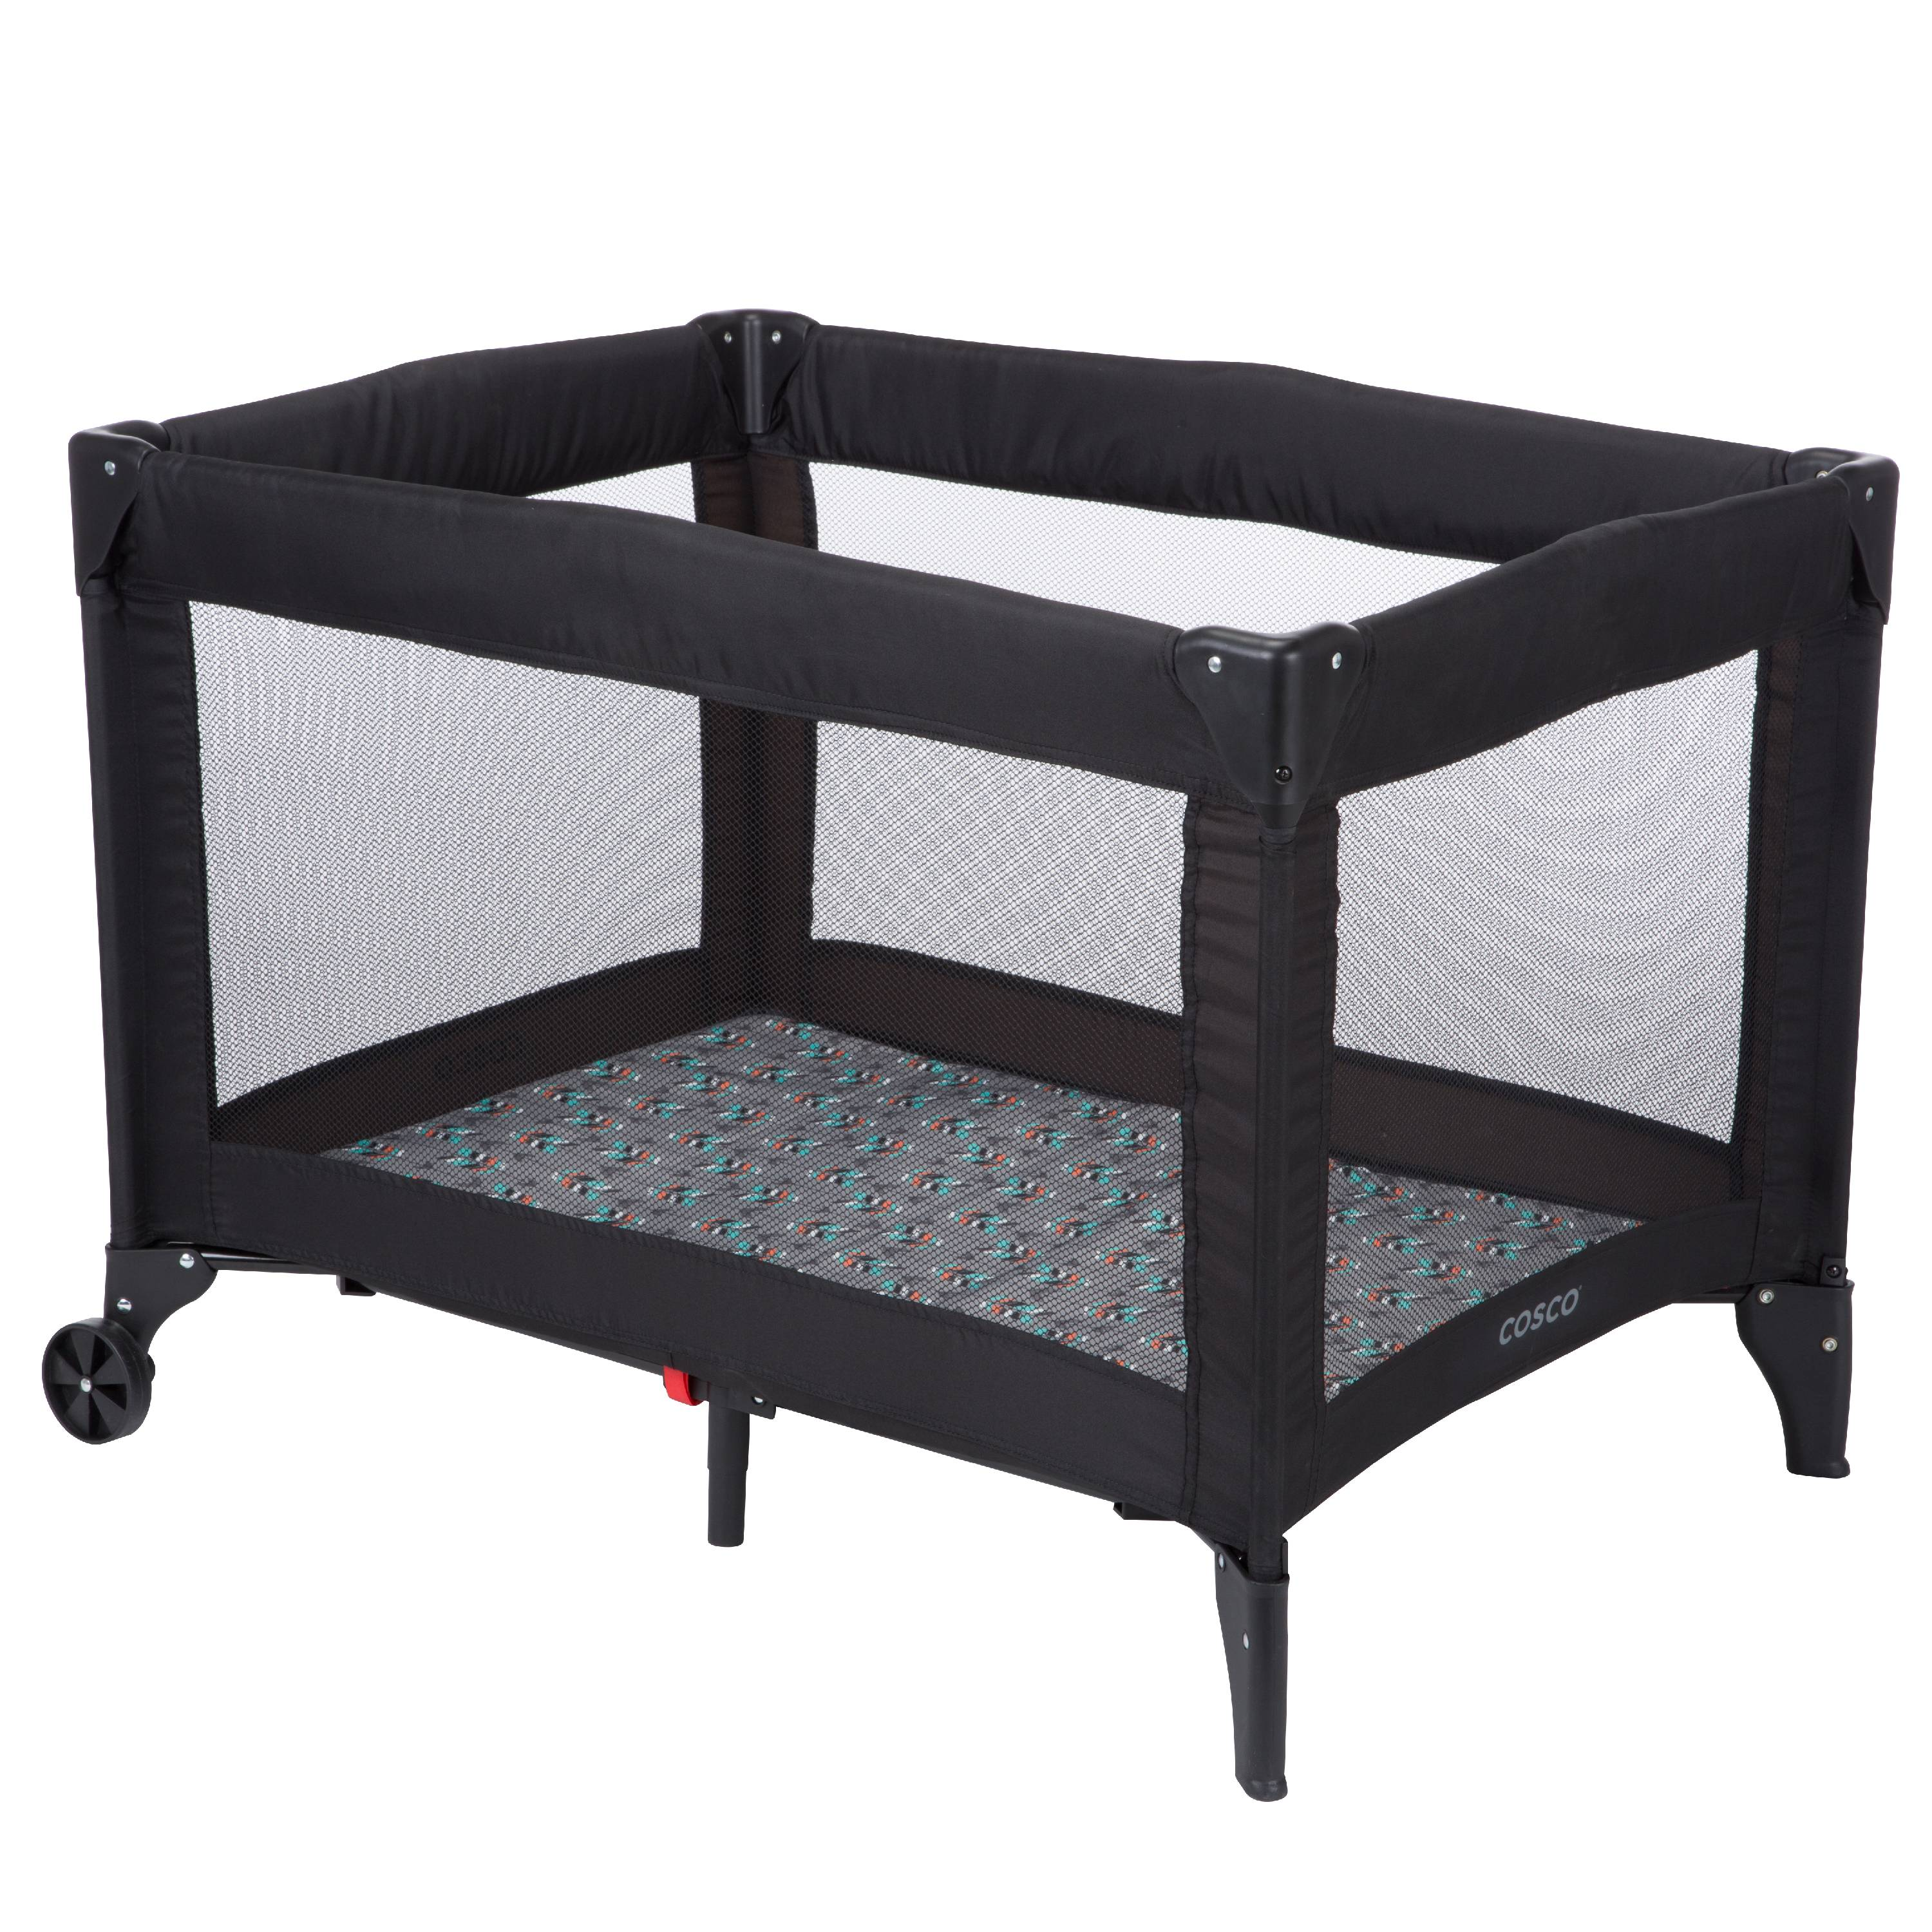 Cosco Funsport® Portable Compact Baby Play Yard, Etched Arrows